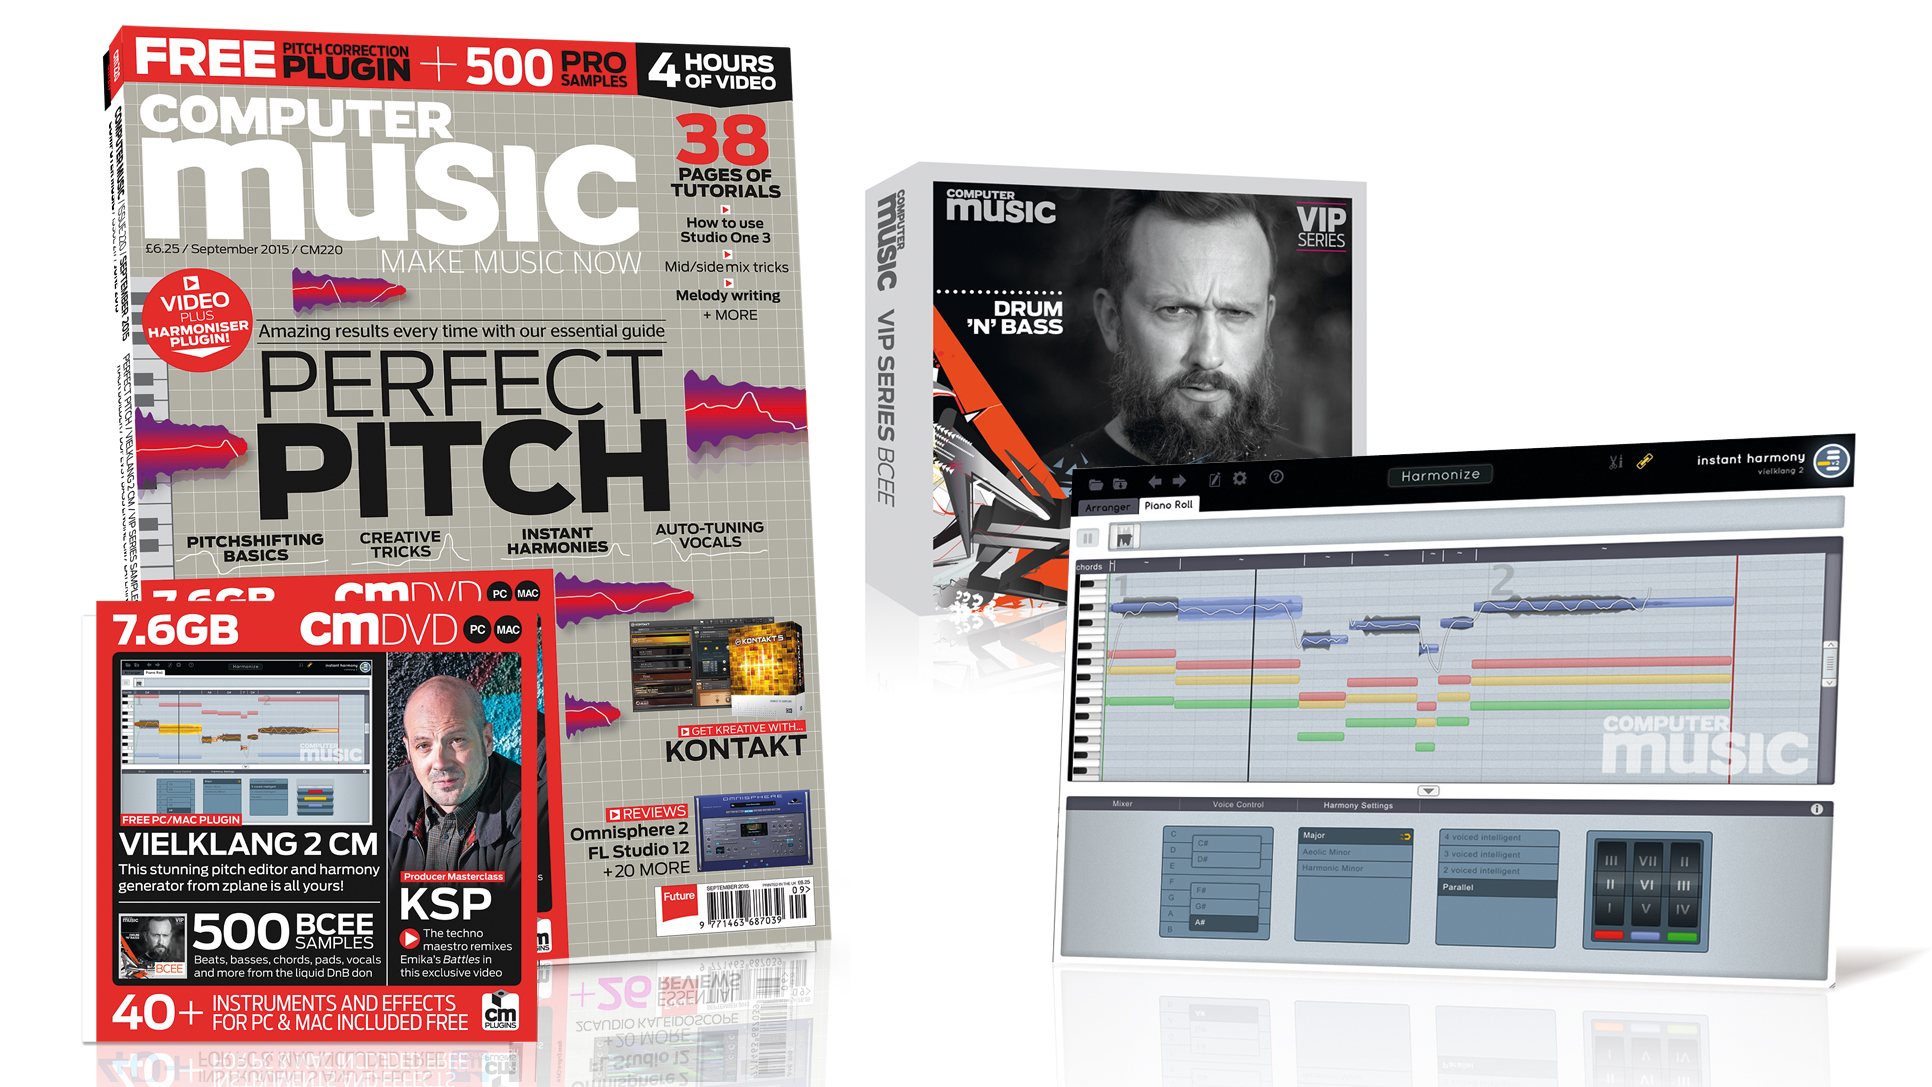 Computer Music issue 220 – PERFECT PITCH – September 2015